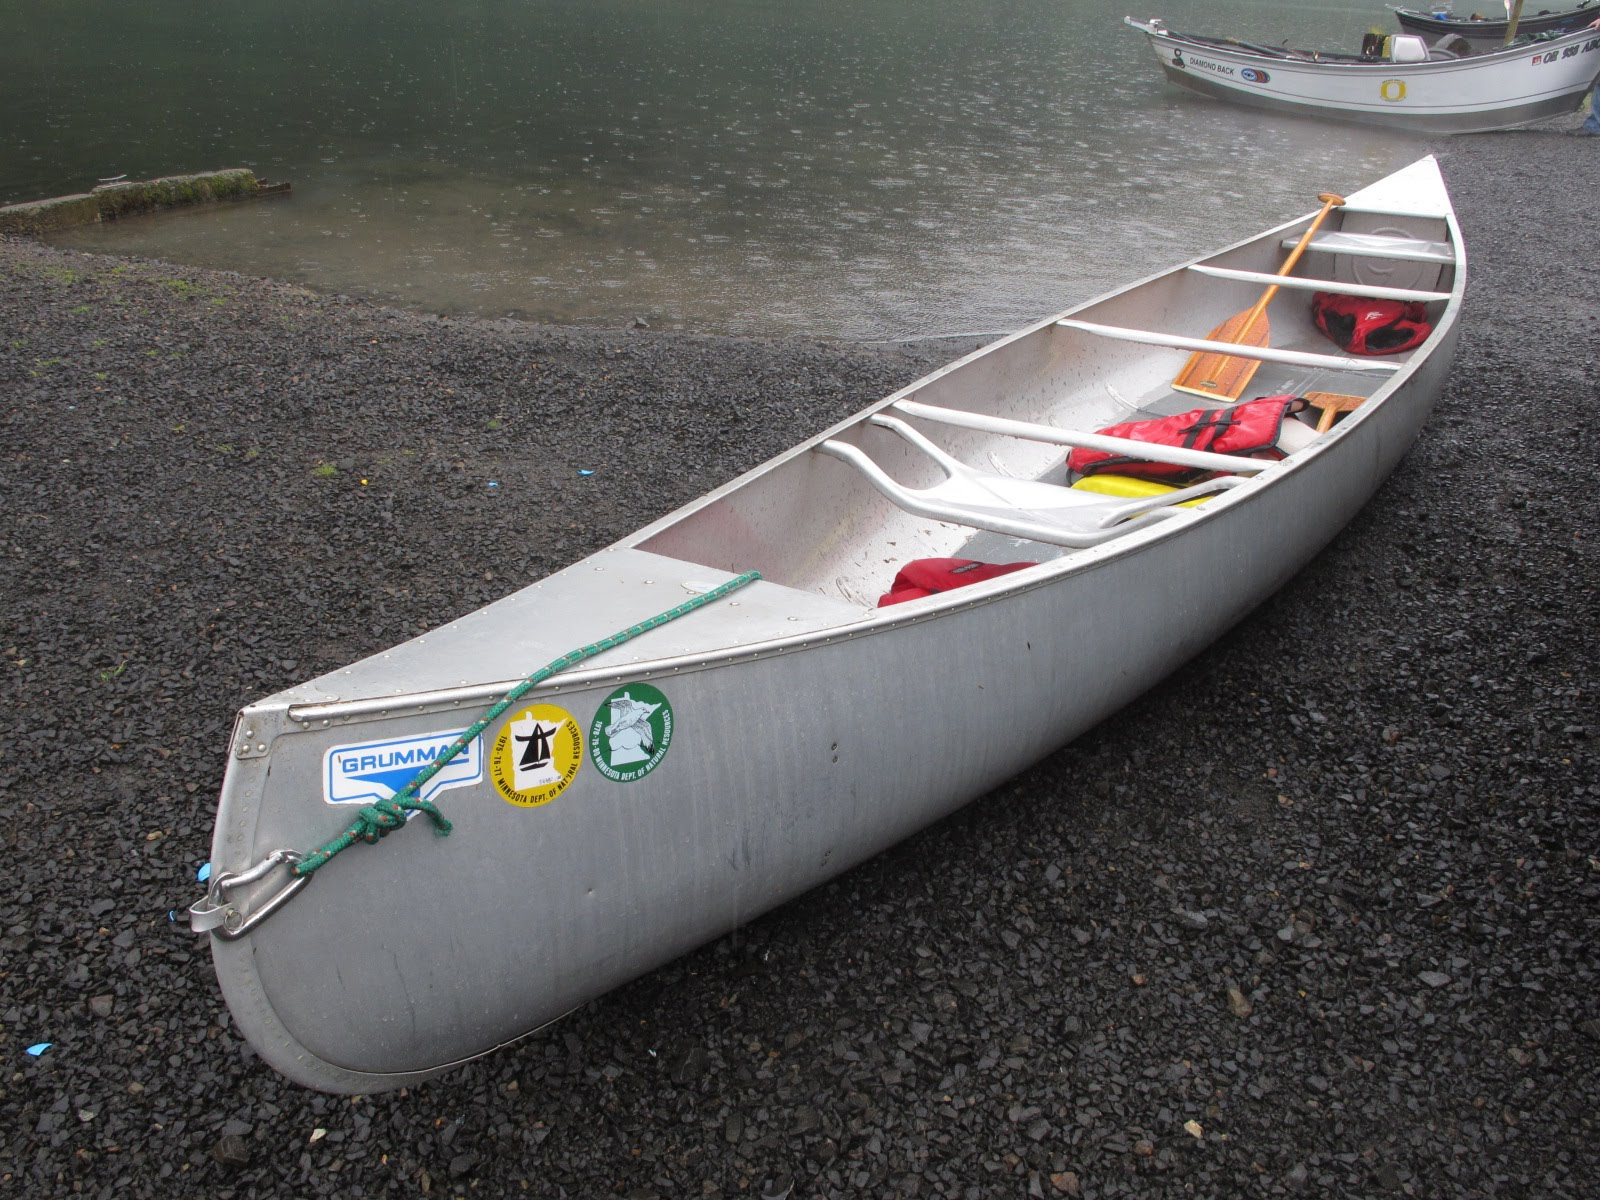 Squareback canoe review